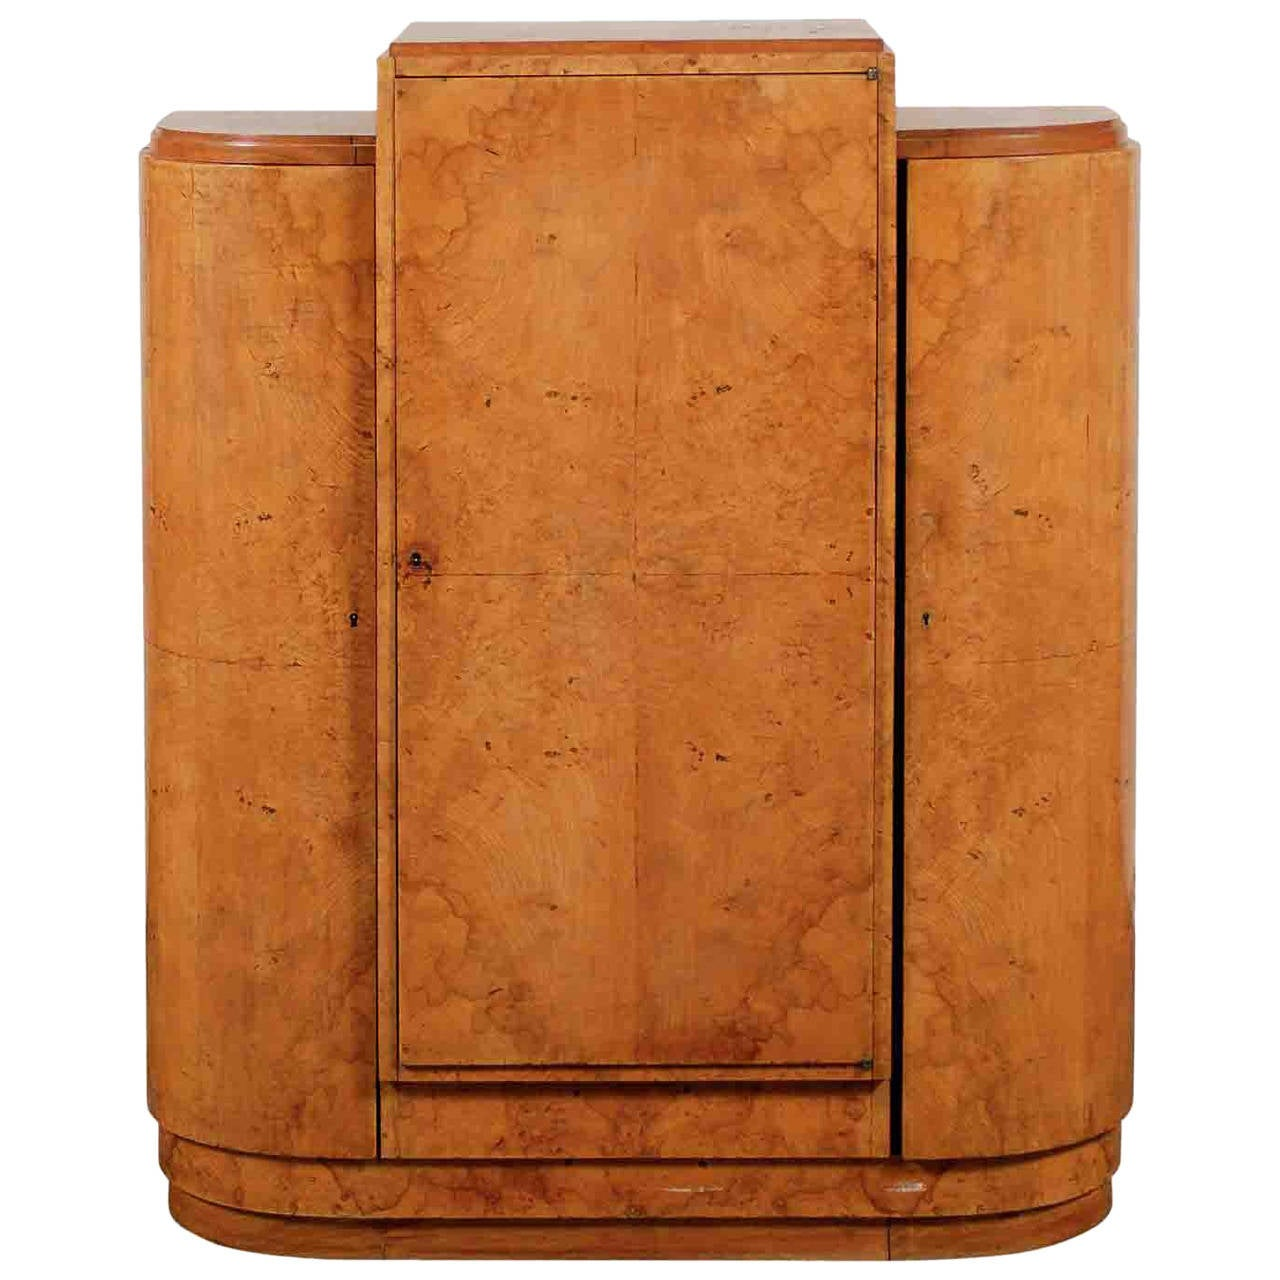 1930s art deco burl wood cabinet for sale at 1stdibs for Burl wood kitchen cabinets